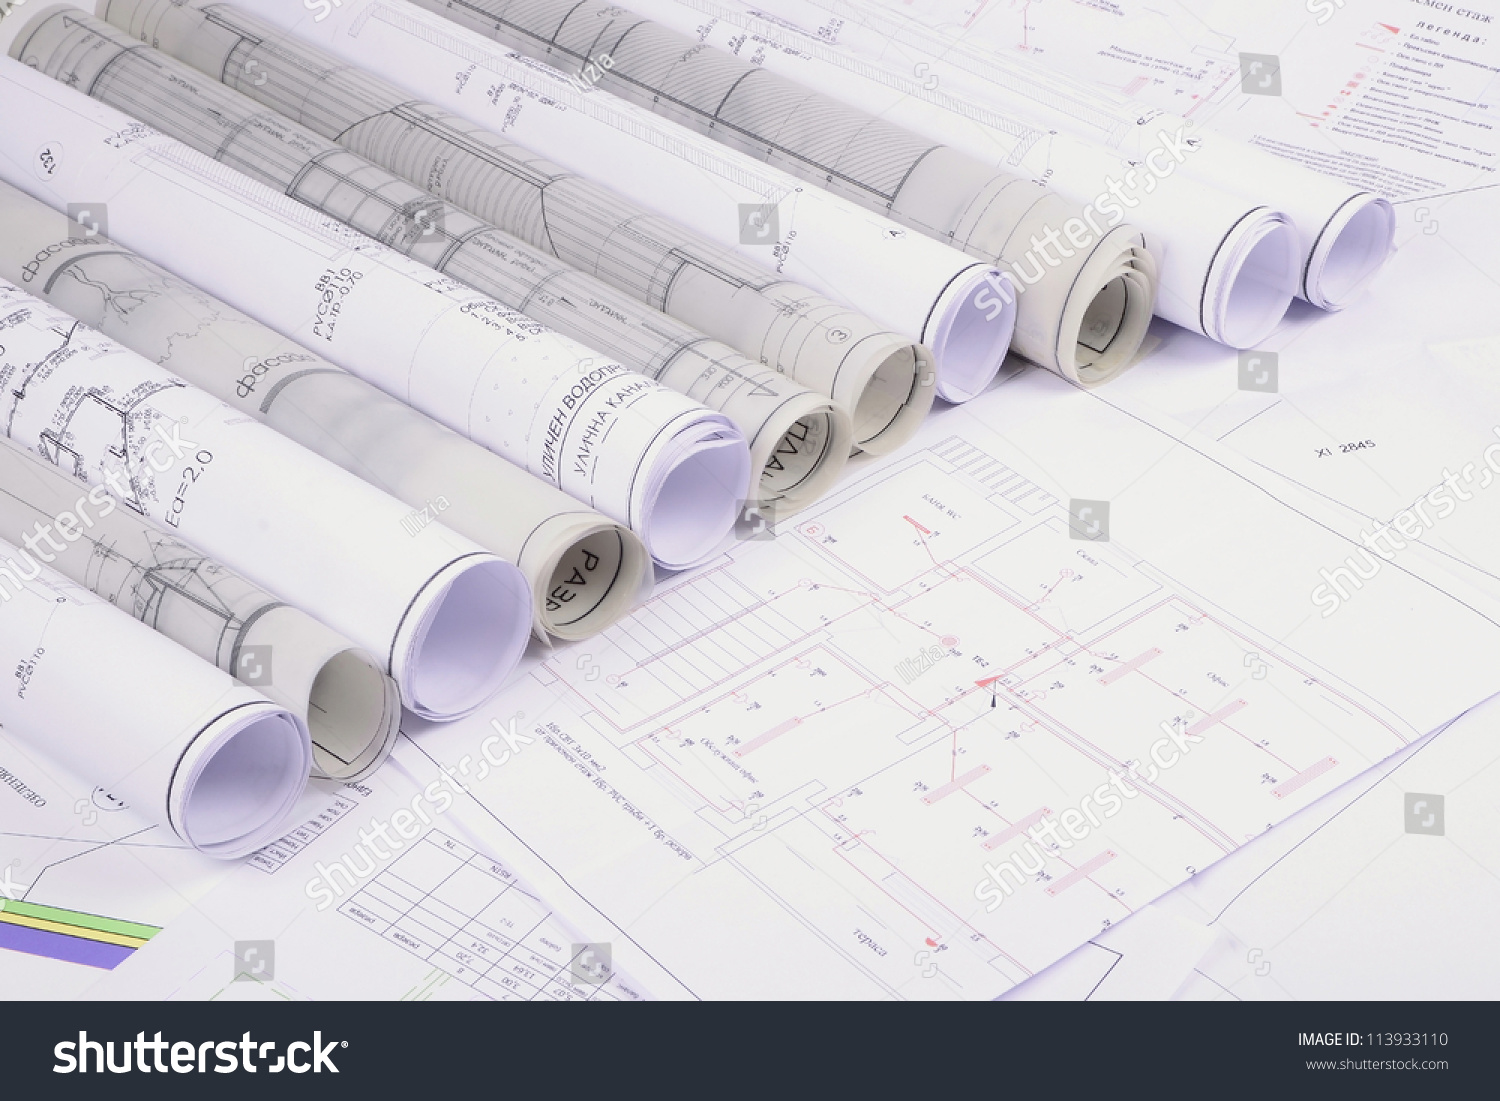 Architectural Plans detailed architectural drawings architecture ideas Architectural Plans Of The Old Paper Tracing Paper